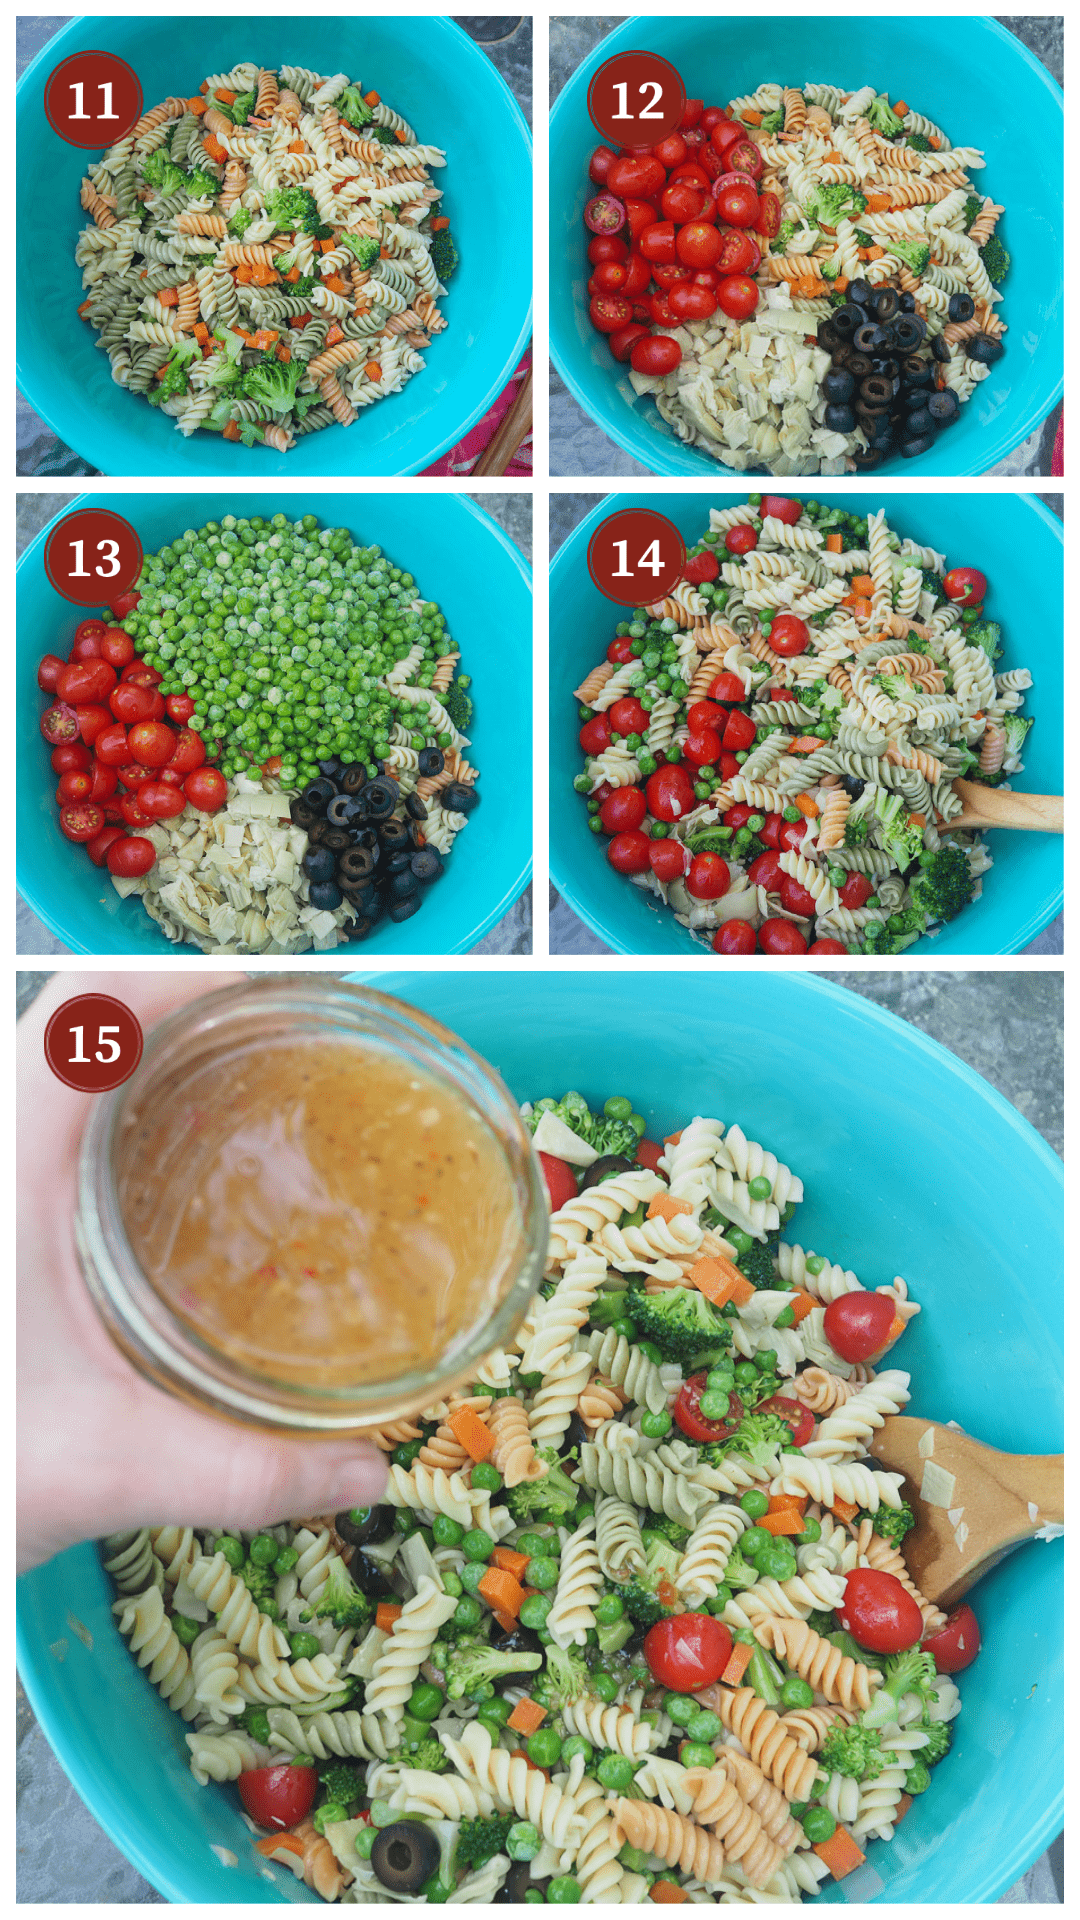 A collage of images showing hot to make pasta salad, steps 11 - 15.